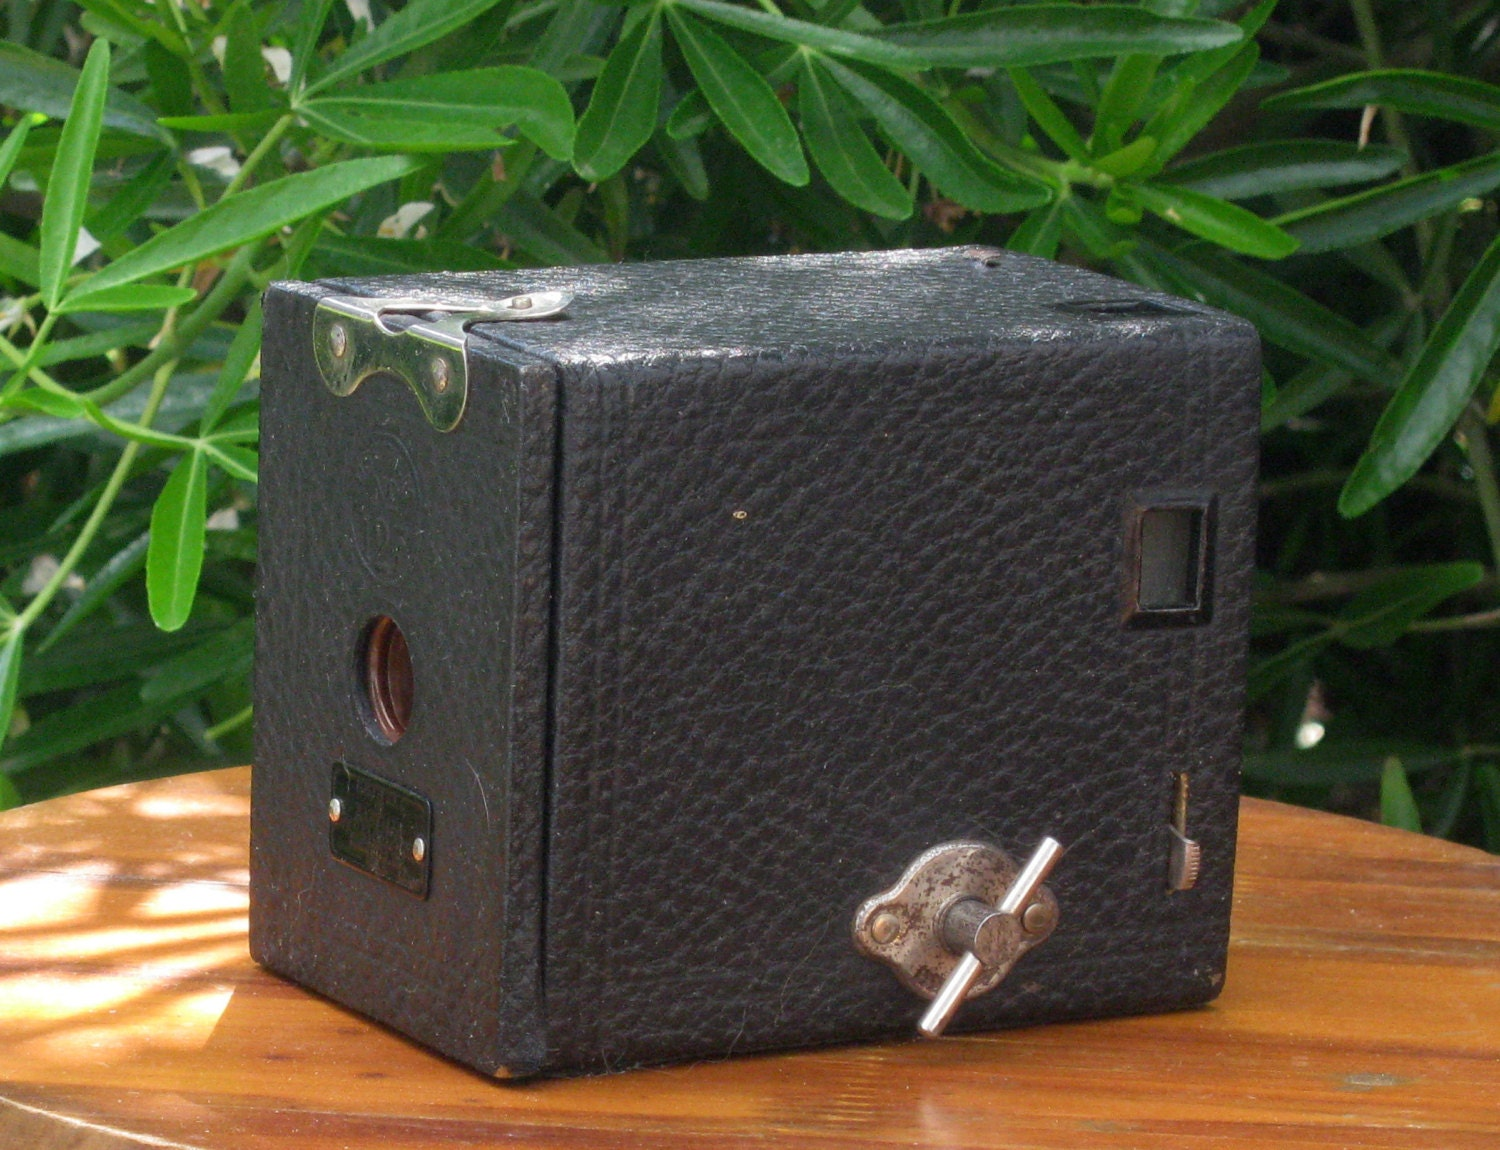 Vintage Kodak No 0 Brownie Box Camera For 127 Film 1914 1935